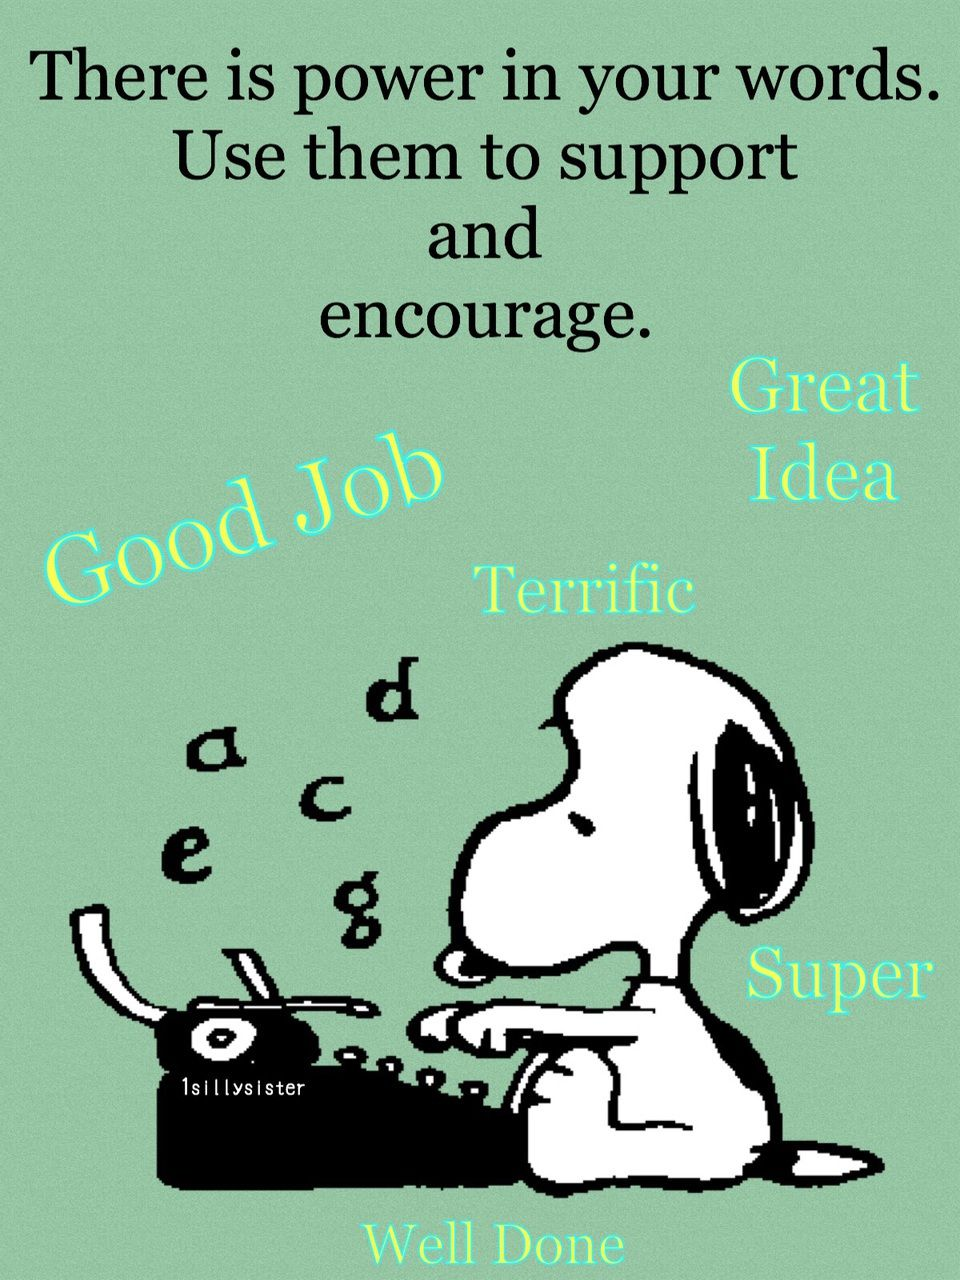 Snoopy words | Wise Words | Snoopy, Blog topics, Cartoon